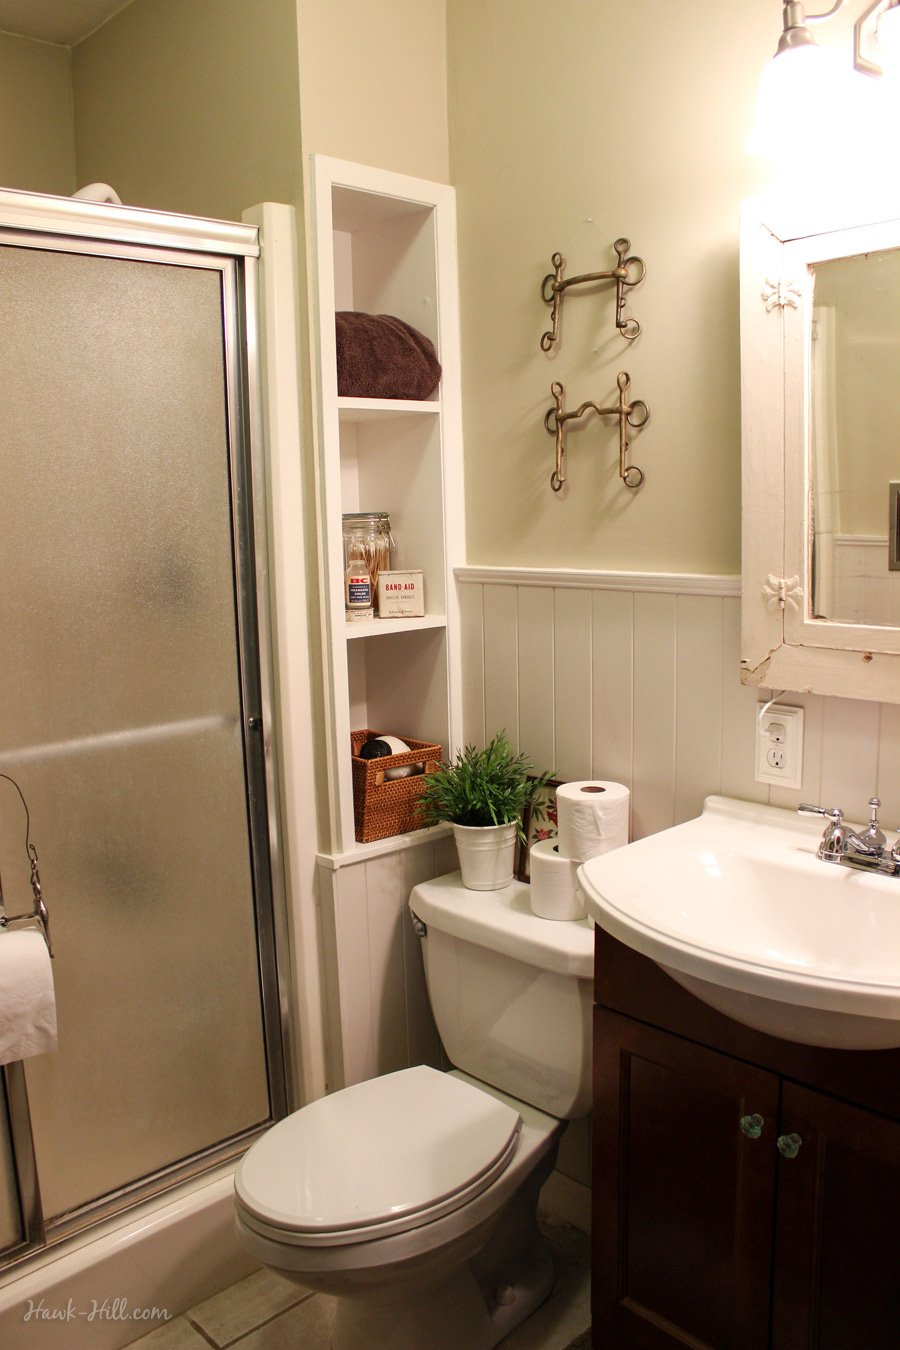 300 bathroom remodel installing shiplap or paneling for Bathroom remodel 2015